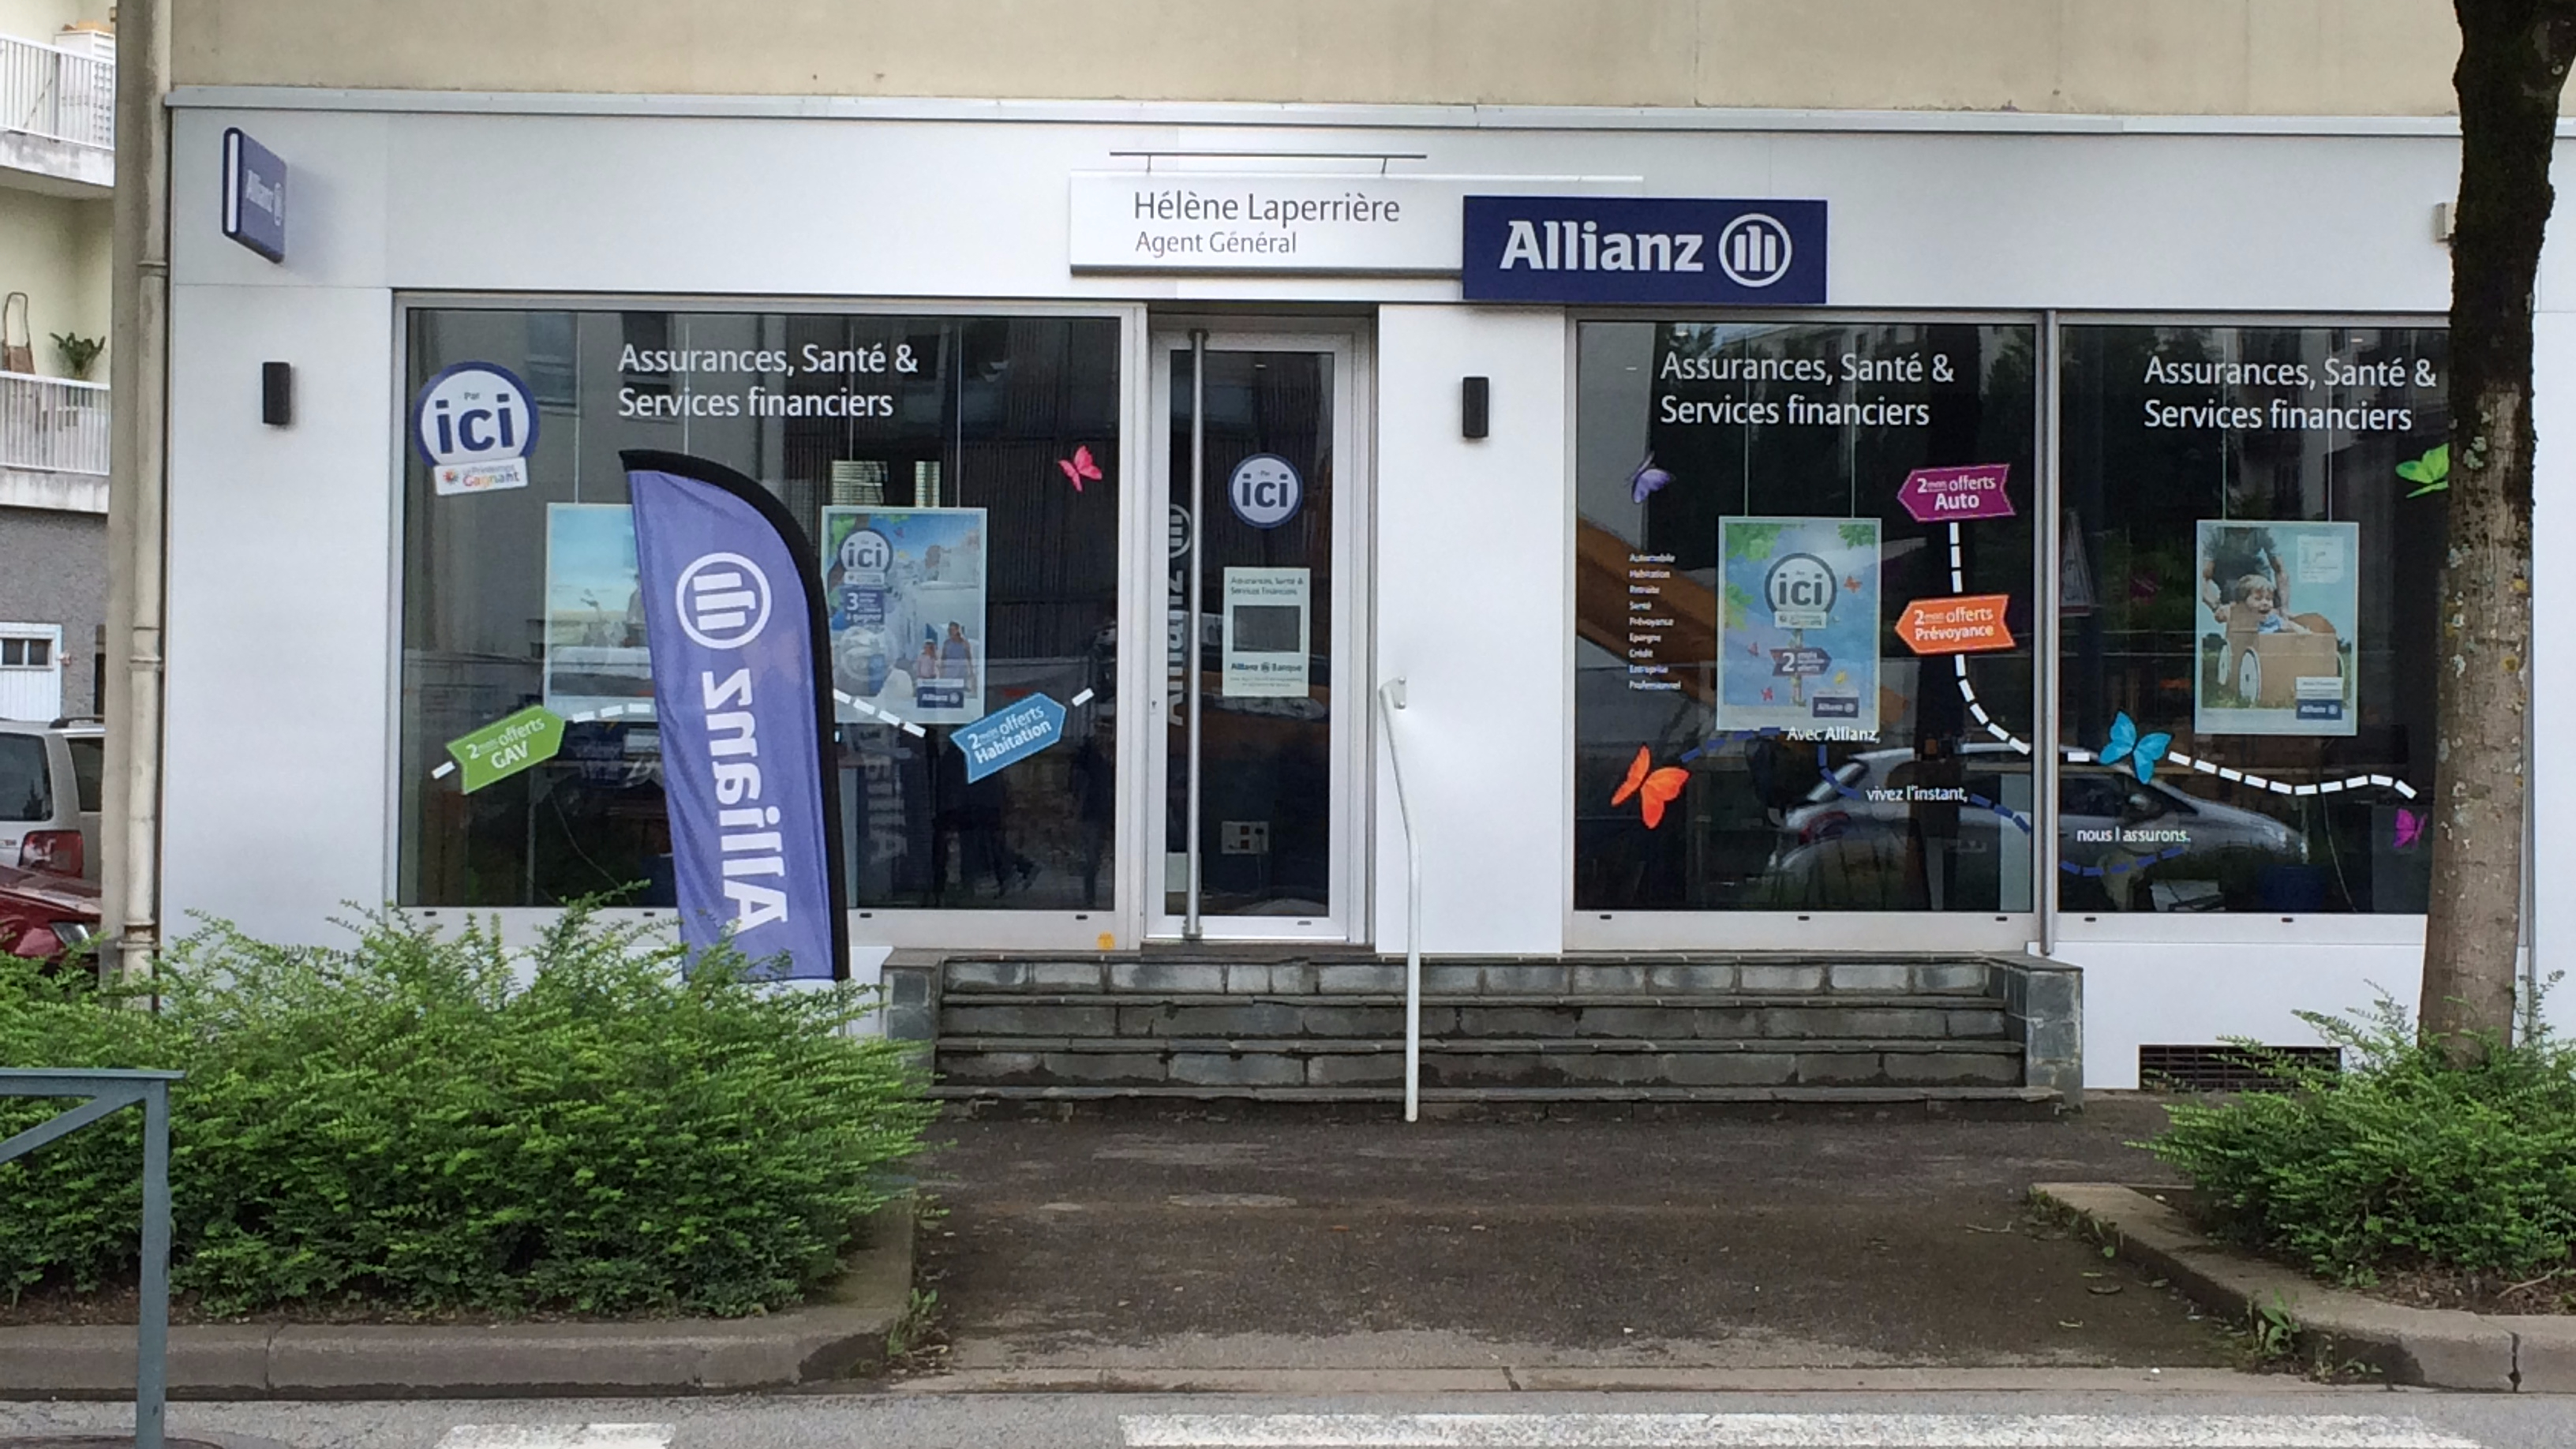 Allianz Annecy - Helene LAPERRIERE